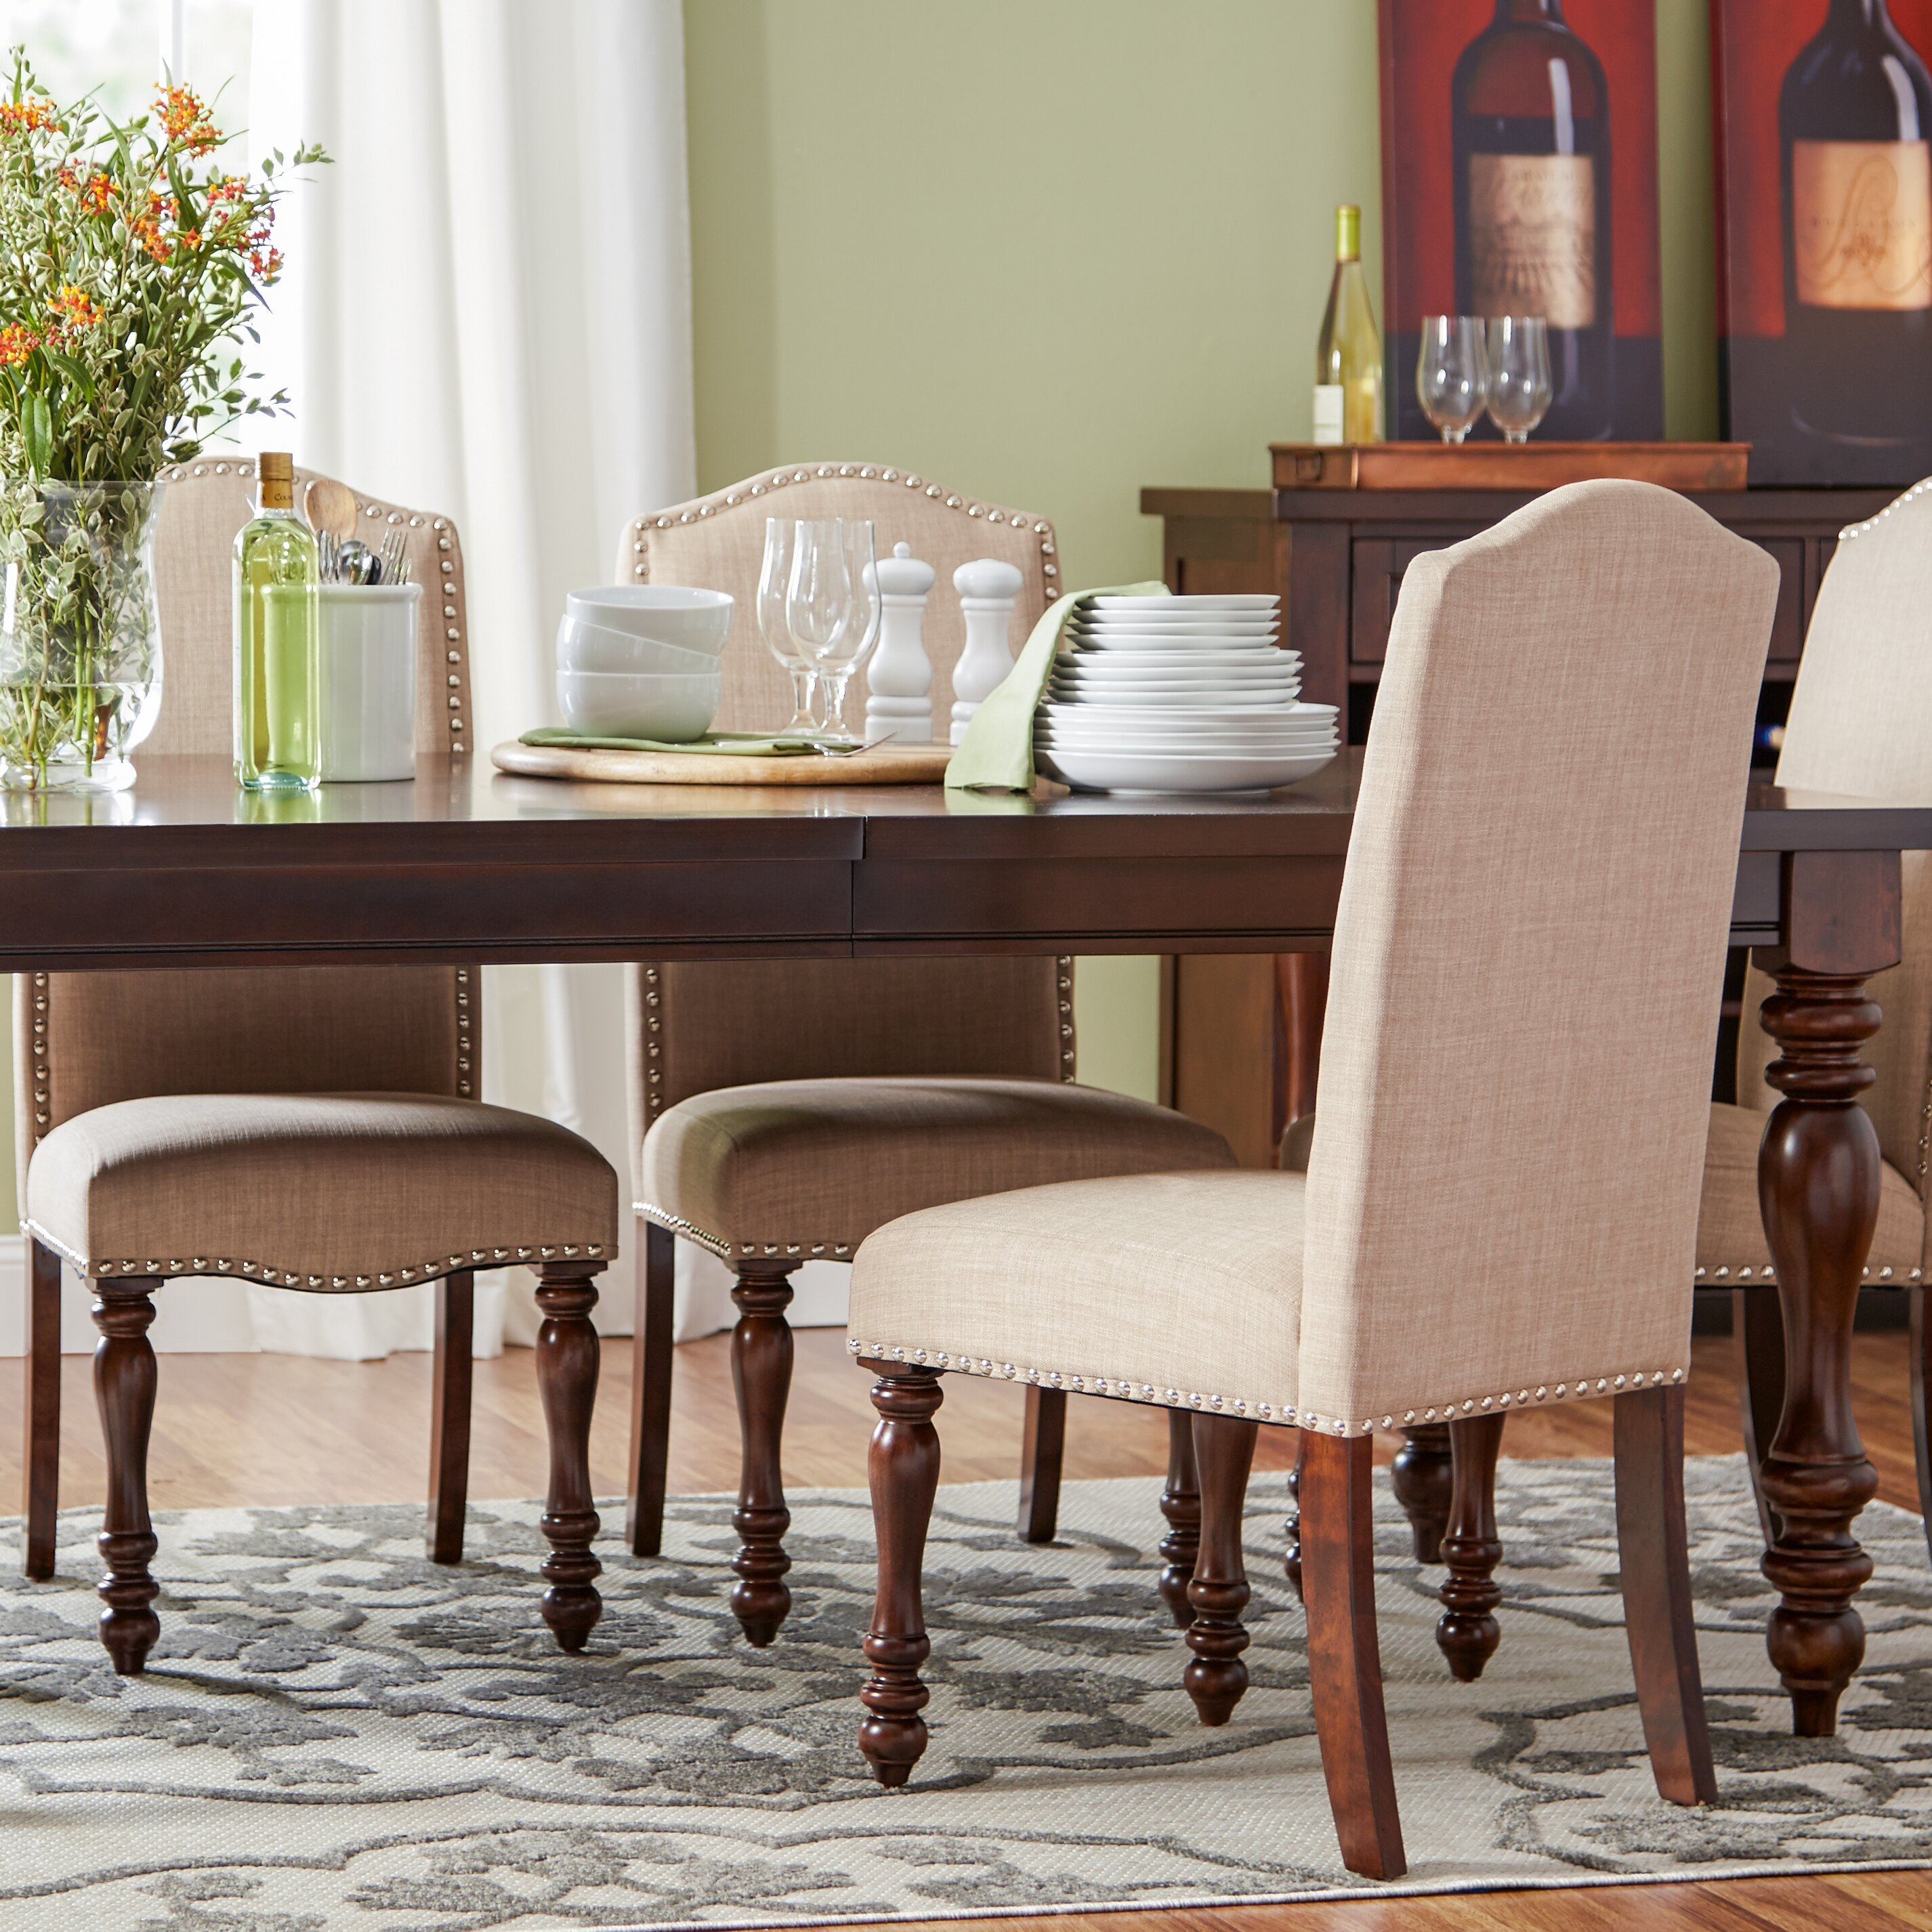 Wayfair Modern Dining Chairs Dining room ideas